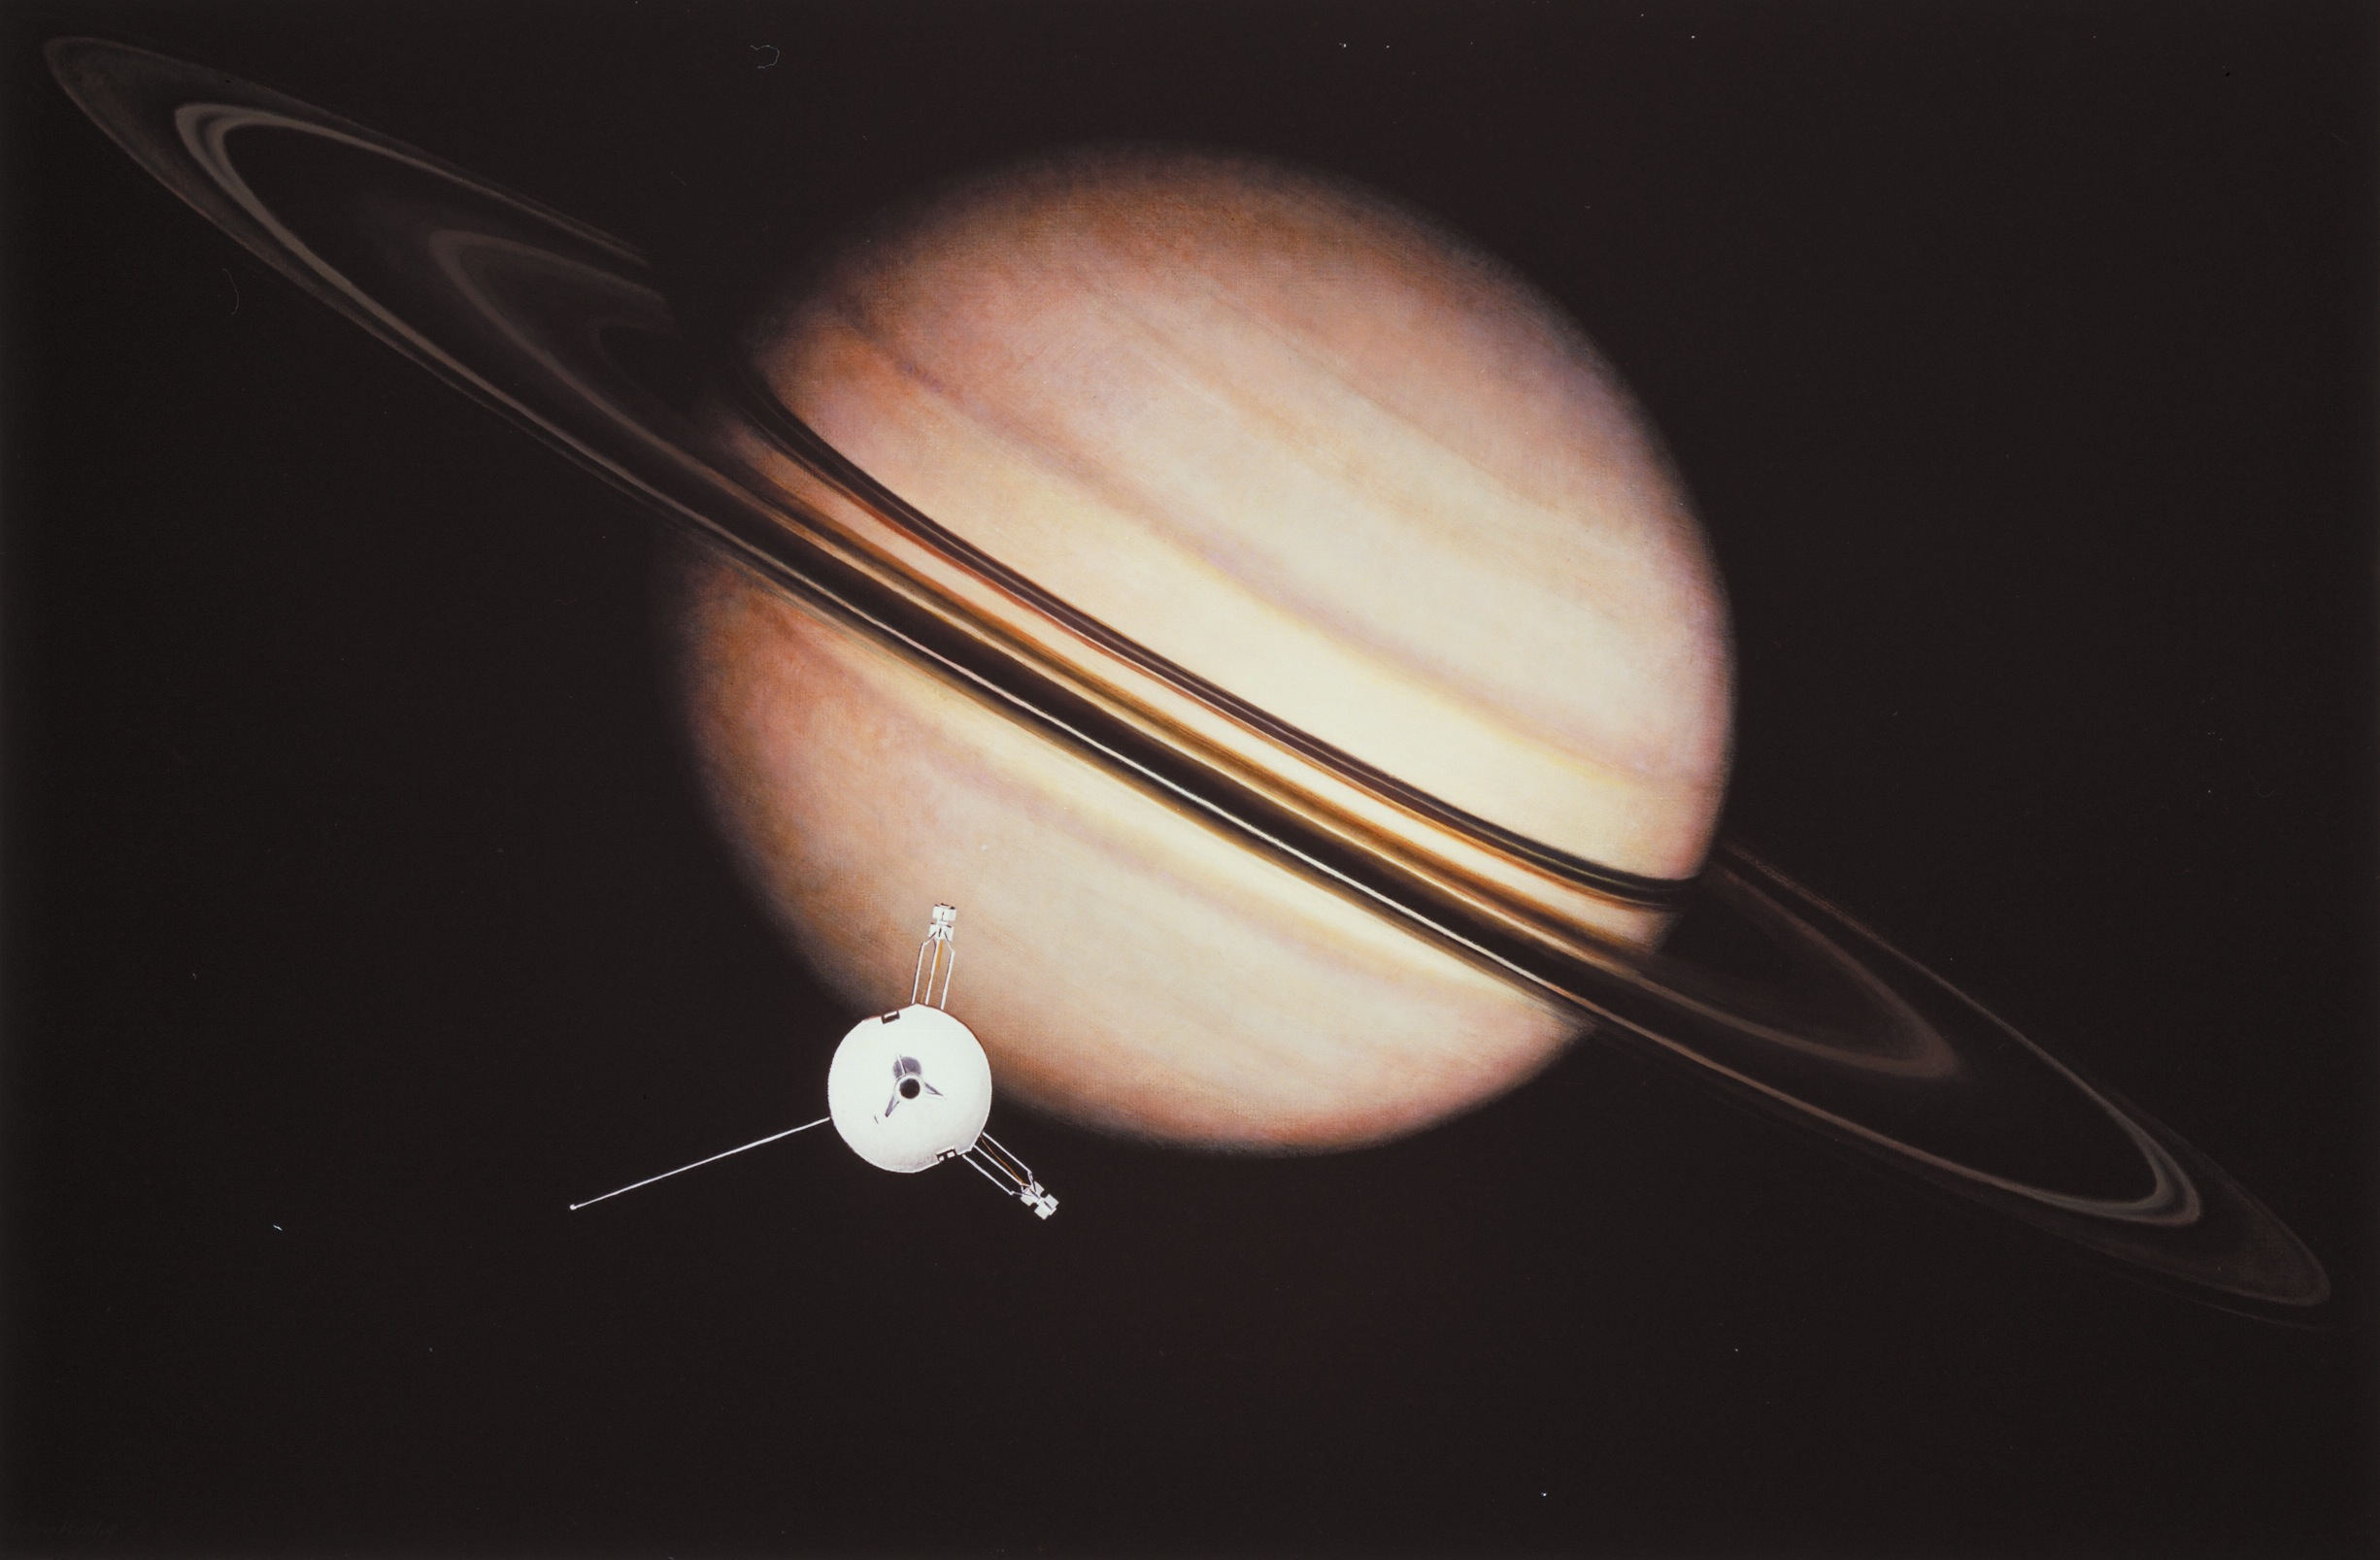 Pioneer 11 Image of Planet Saturn 1979 Titan Moon Historic Planet Saturn PHOTO